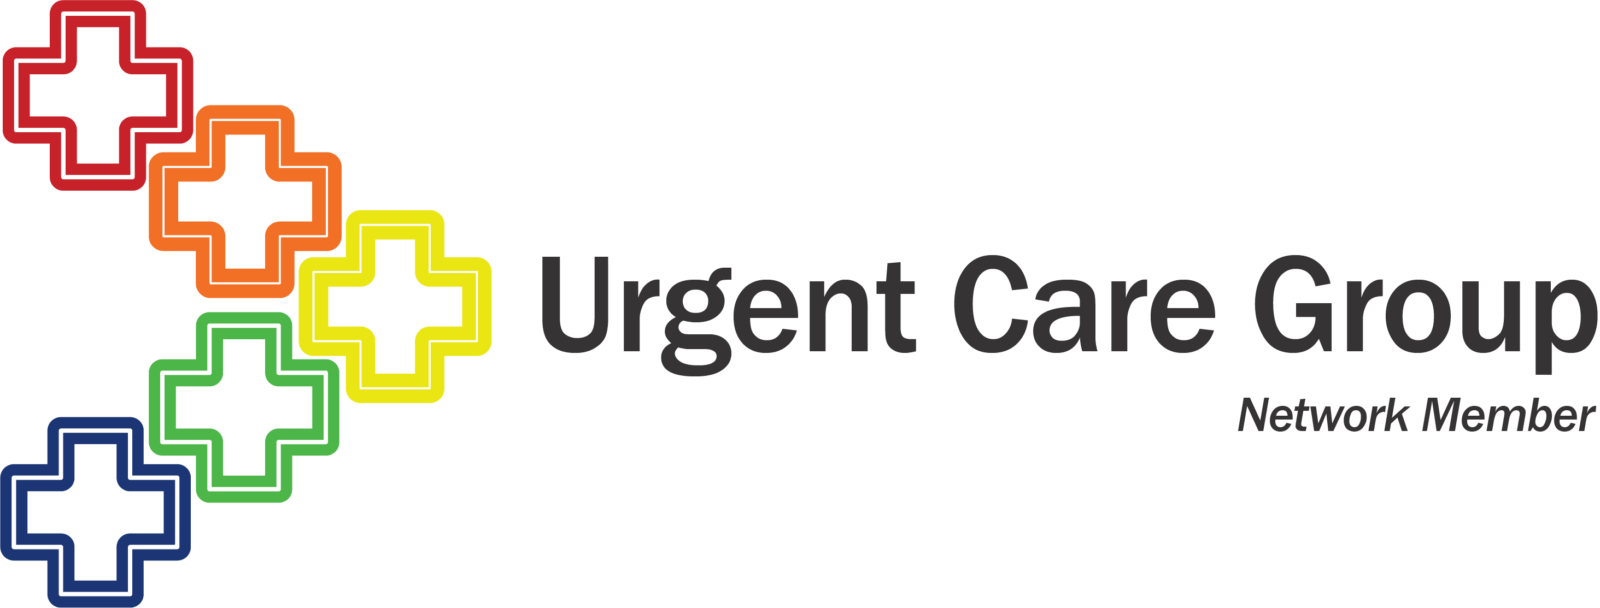 the urgent care group network member logo